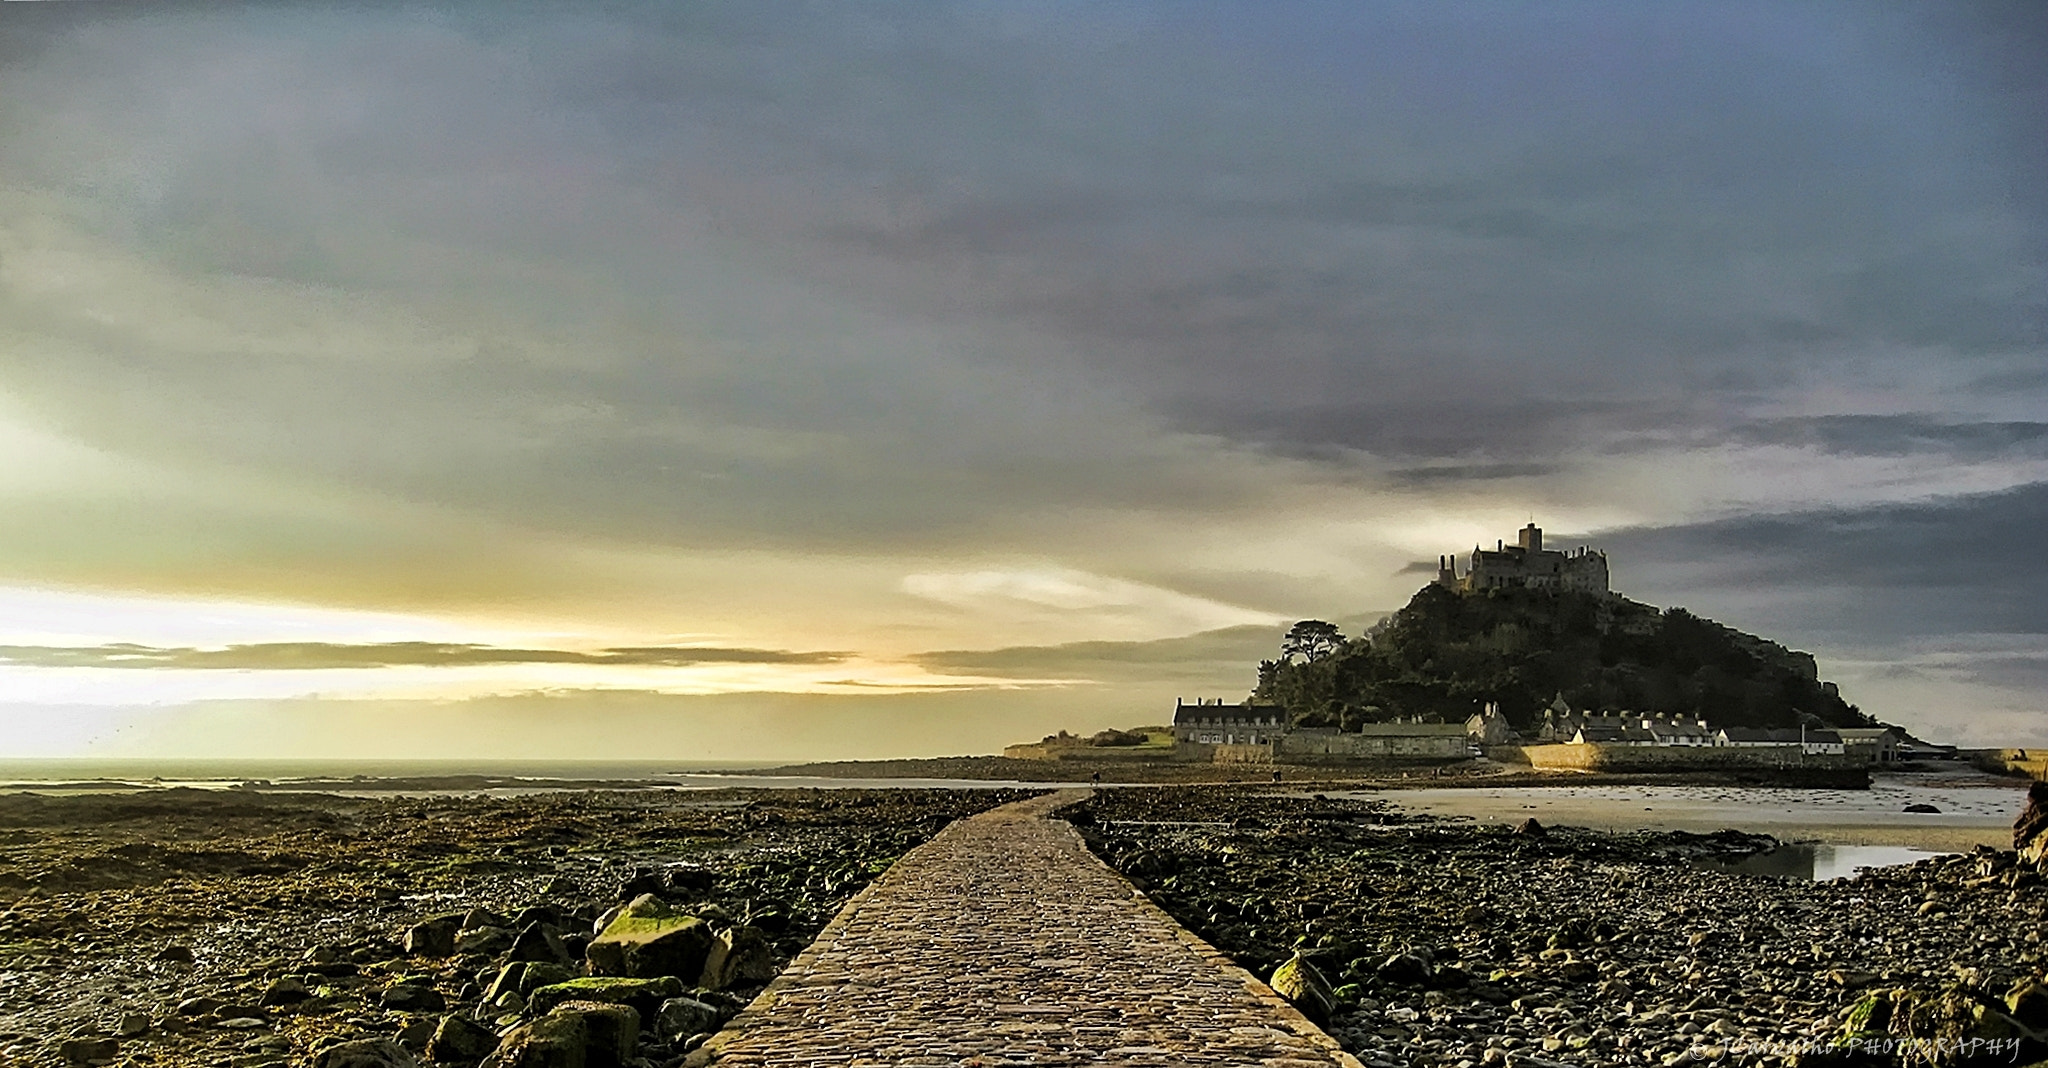 Photograph Good Morning St Michael´s mount by Joel Carvalho on 500px